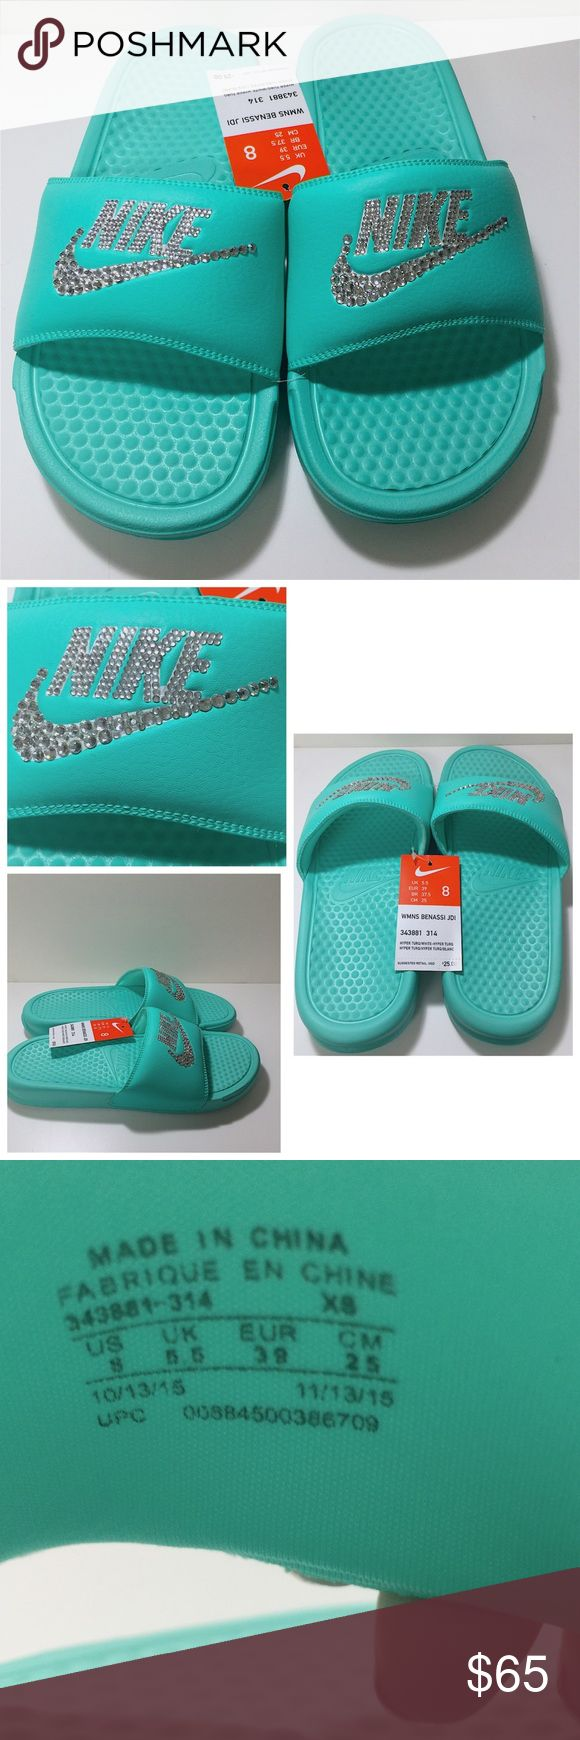 "SOLDBlinged Tiffany blue women's nike slides Blinged out Tiffany blue colored women's Benassi Jdi slides, size 8. NWT, never been worn. All jewels intact! Jewels on ""NIKE"" and the Nike swoosh. THESE ARE CUSTOM MADE, YOU CAN FIND THE NIKE SLIDES AT RETAILERS BUT YOU WILL NOT FIND ANY RETAILERS THAT SELL THEM WITH JEWELS APPLIED TO THEM. I spend hours analyzing and placing the jewels on. Do not low ball me offers on these, it is very insulting. Nike Shoes Sandals"